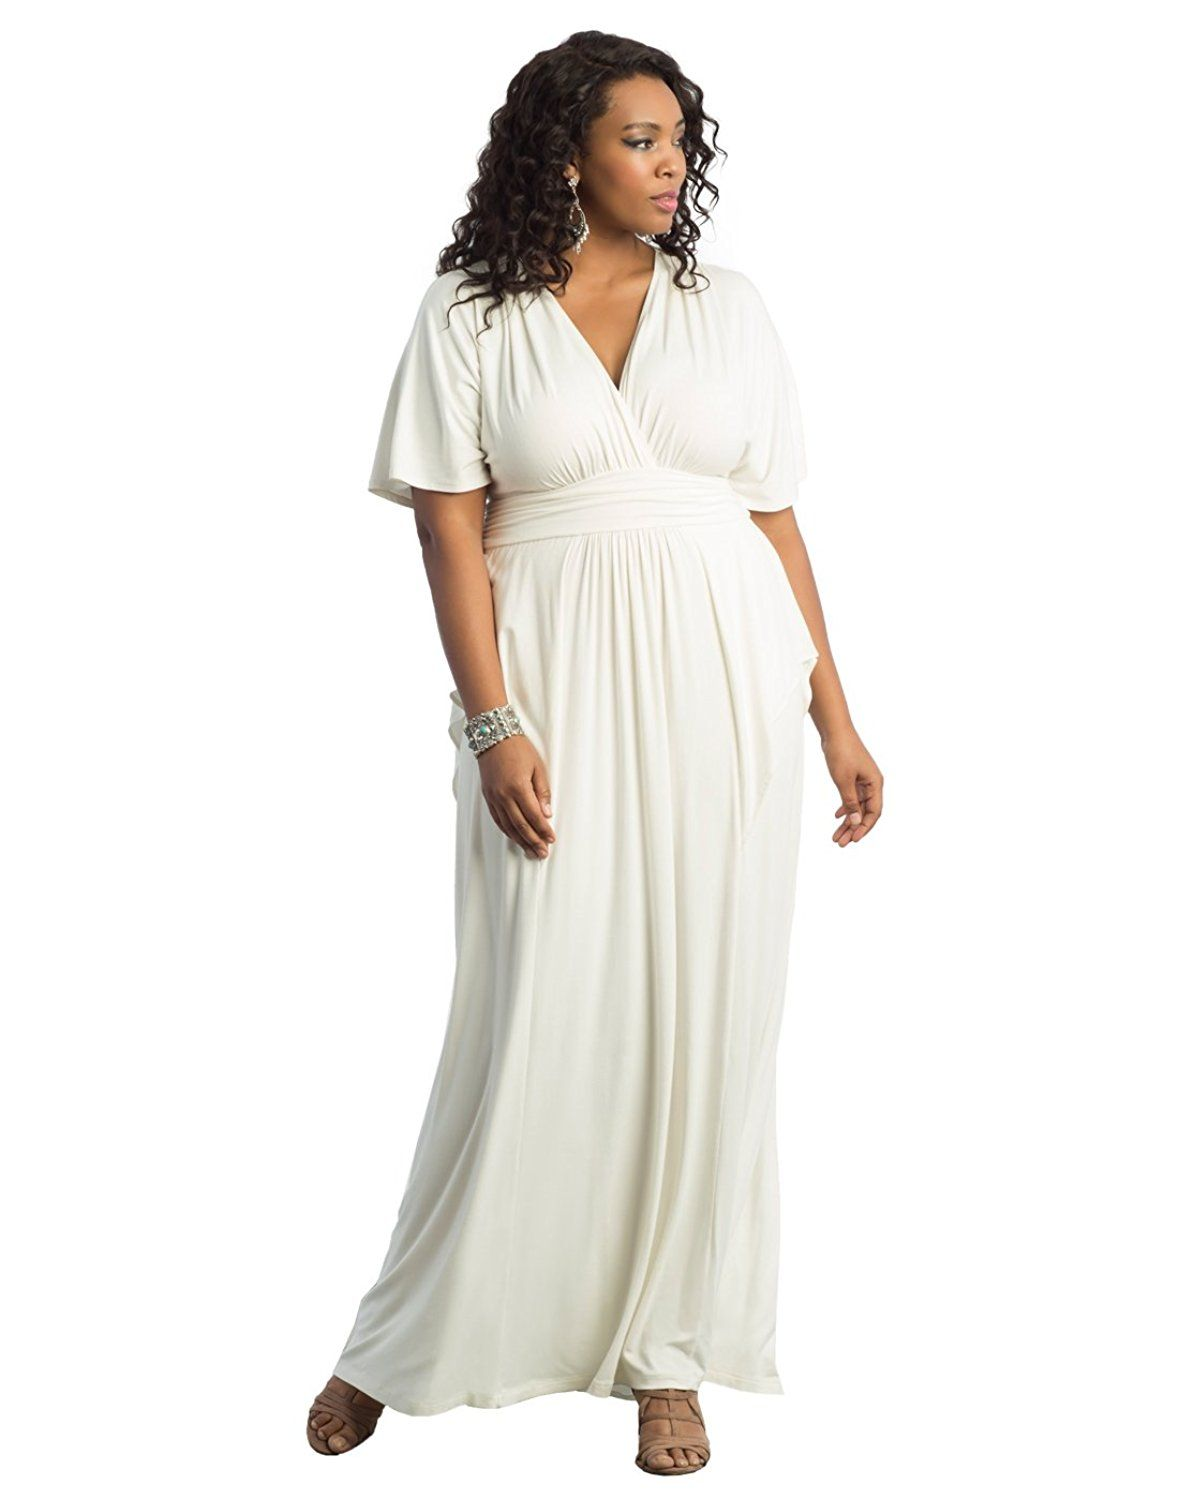 Kiyonna wedding dress  Kiyonna Womenus Plus Size Indie Flair Maxi Dress  Want additional